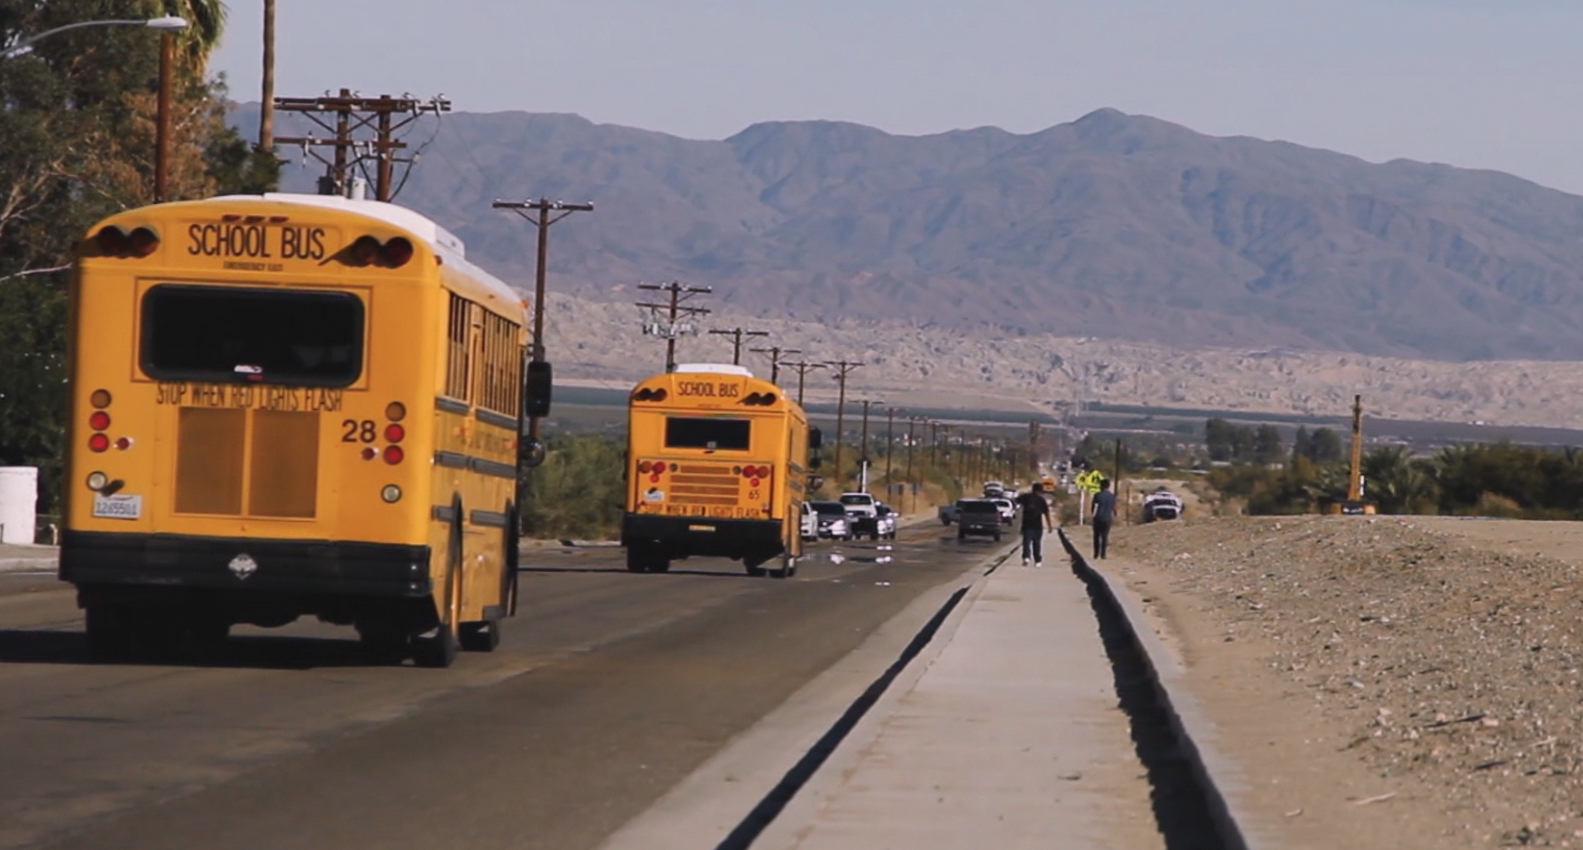 In Coachella Valley, CA., routers have been placed on school buses to enable students to do homework coming and going from school. Photo: PBS NewsHour